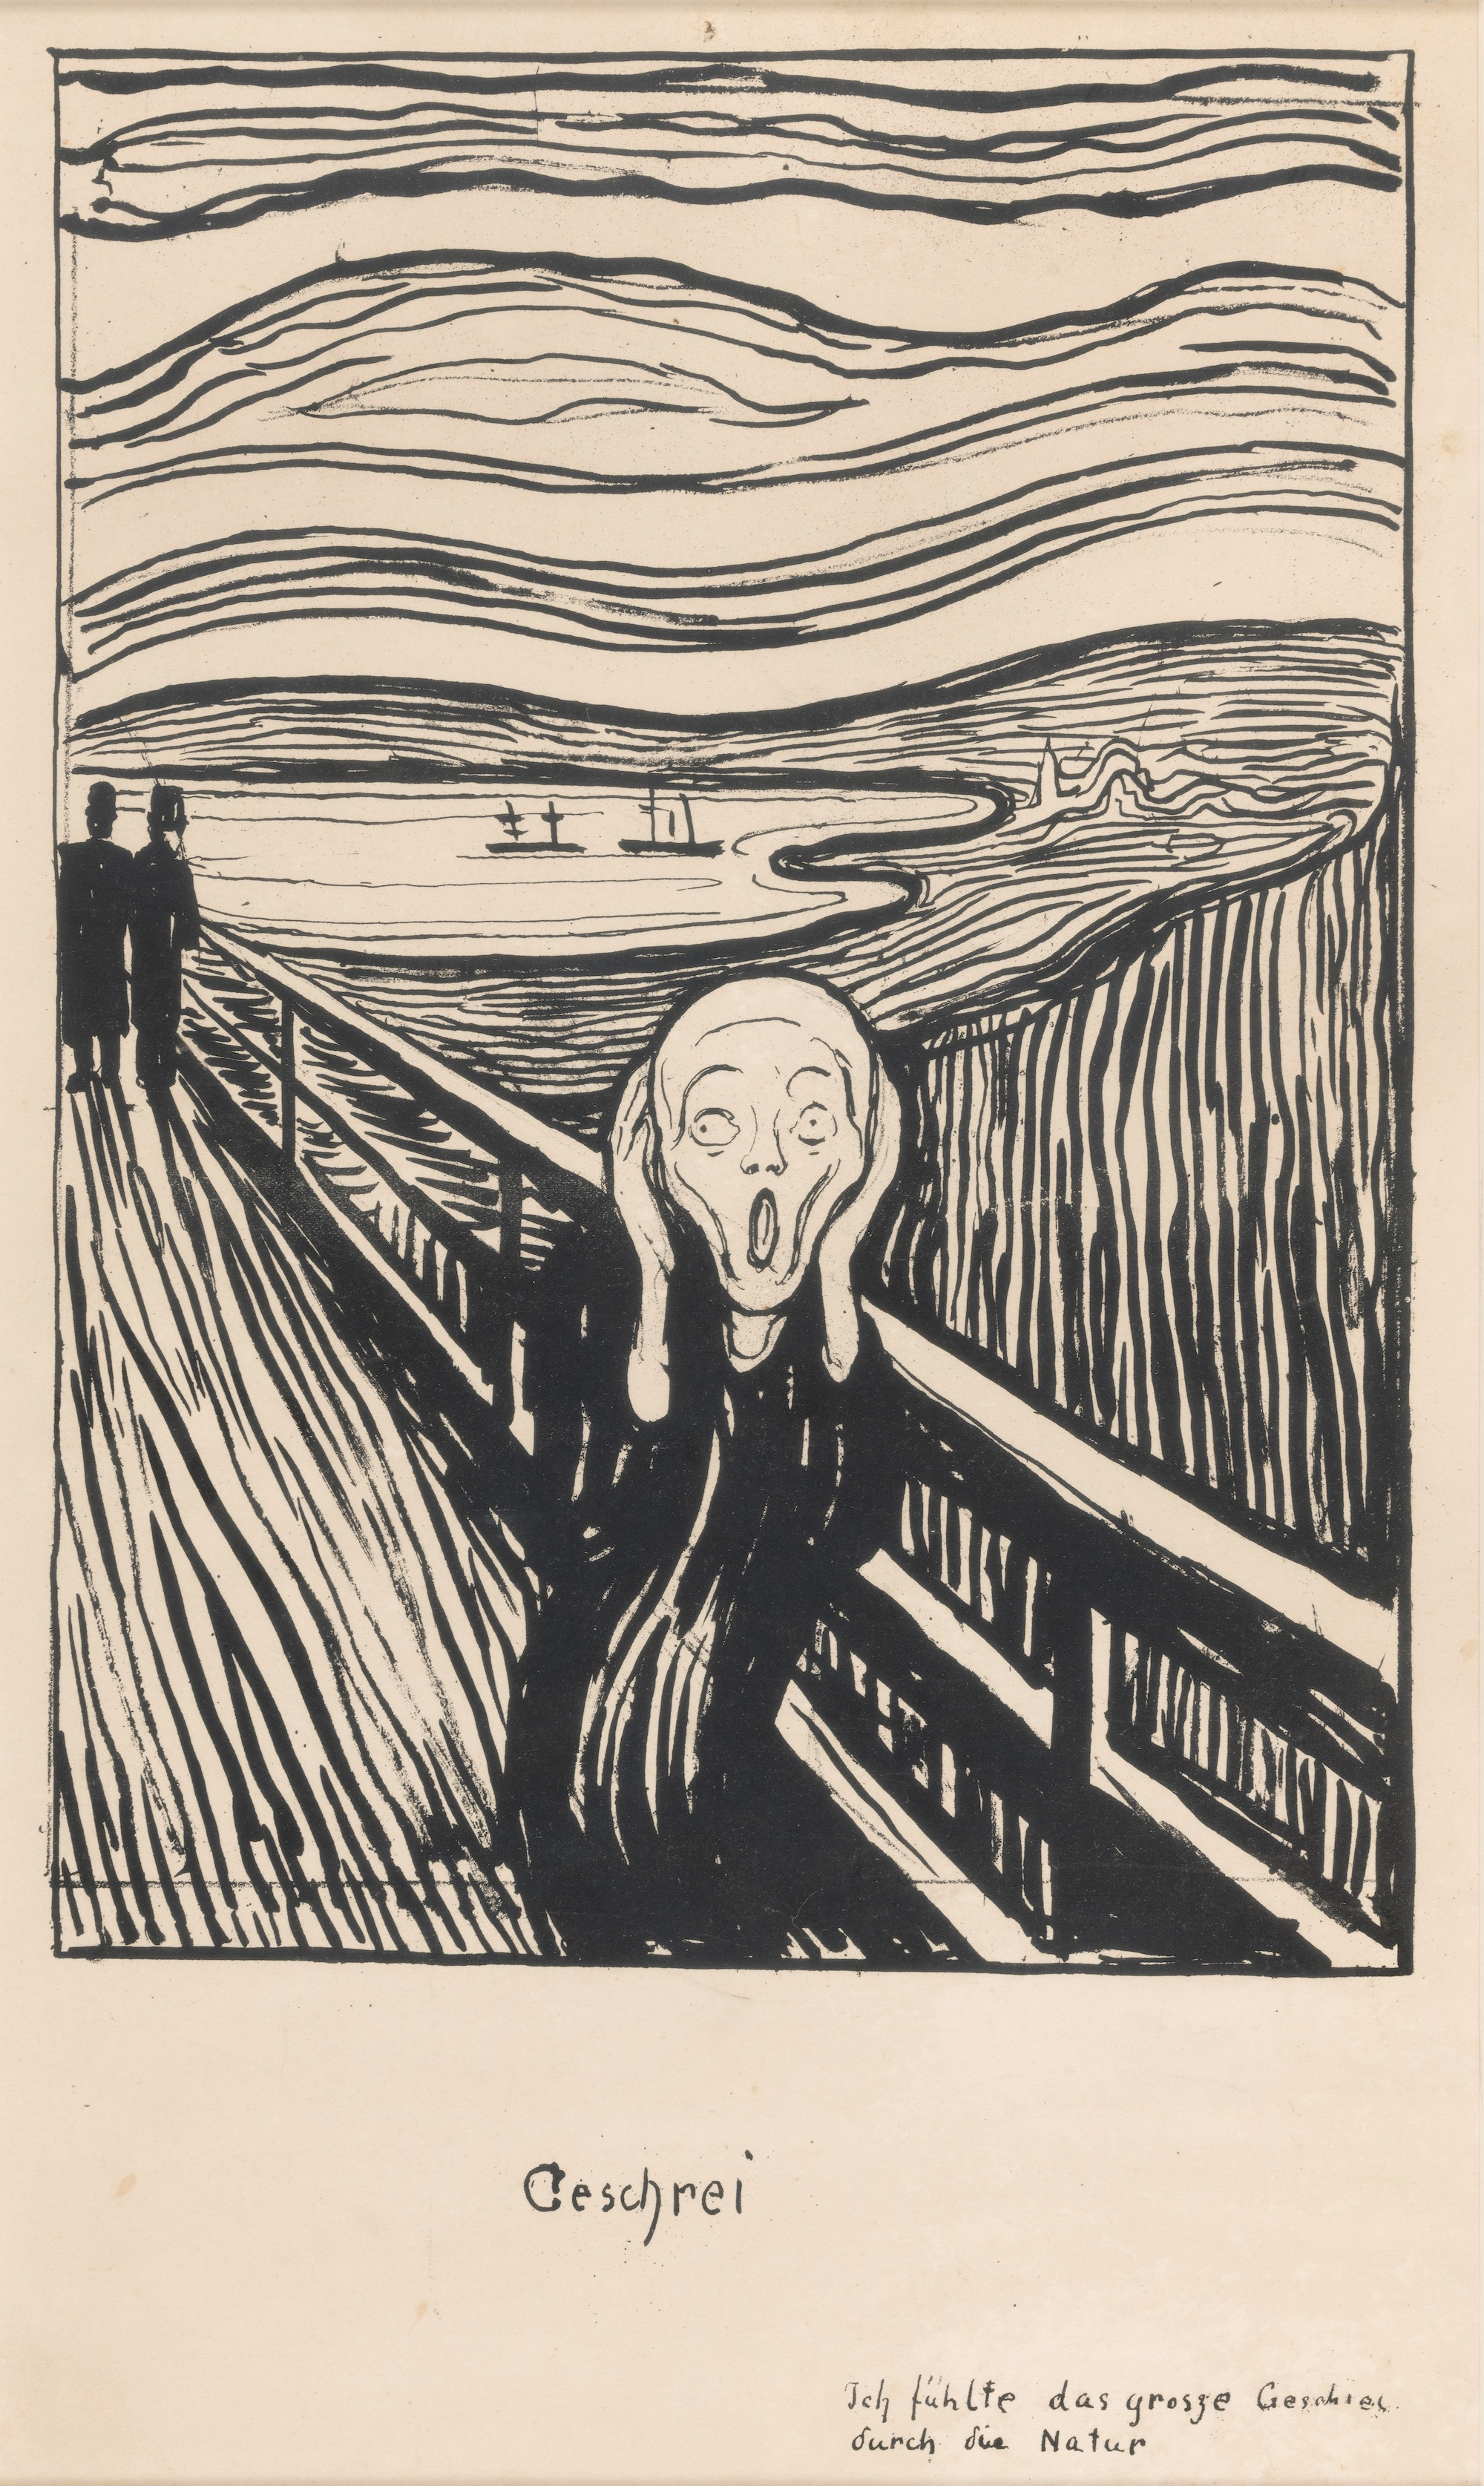 Edvard Munch, The Scream, 1895. Private Collection, Norway. Photo by Thomas Widerberg